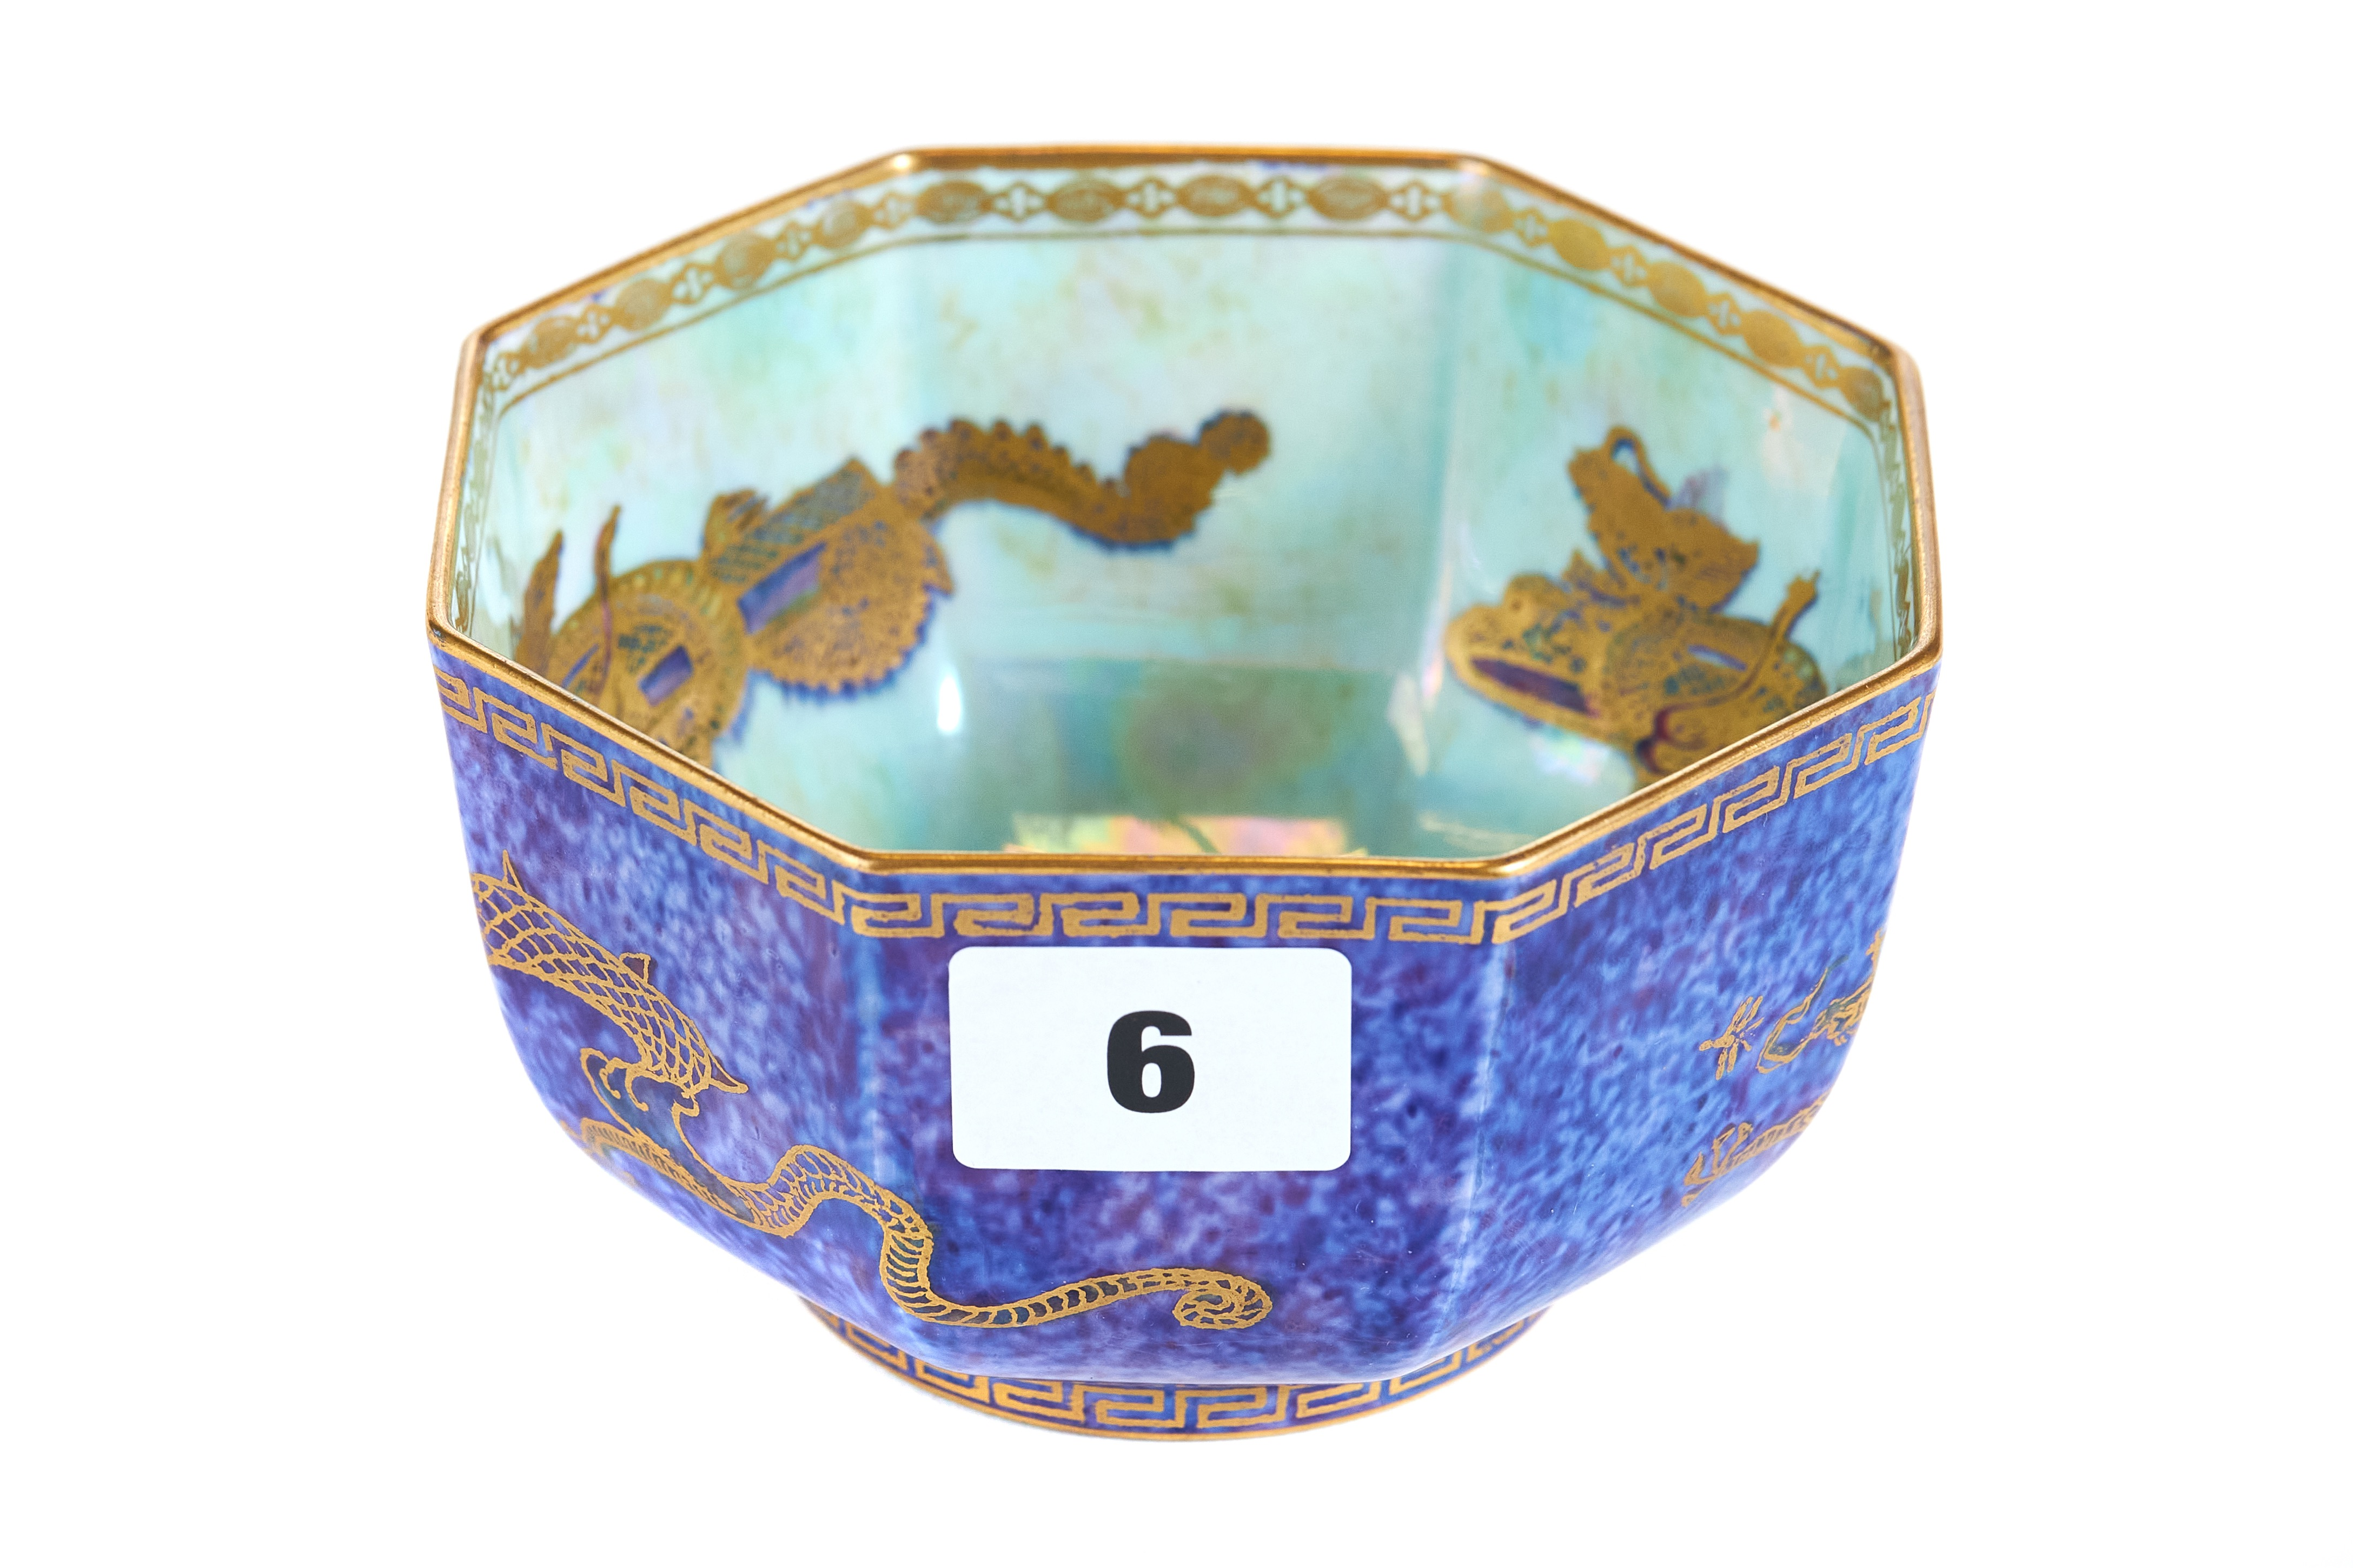 Lot 6 - AN EARLY 20TH CENTURY WEDGWOOD LUSTRE WARE OCTAGONAL BOWL,